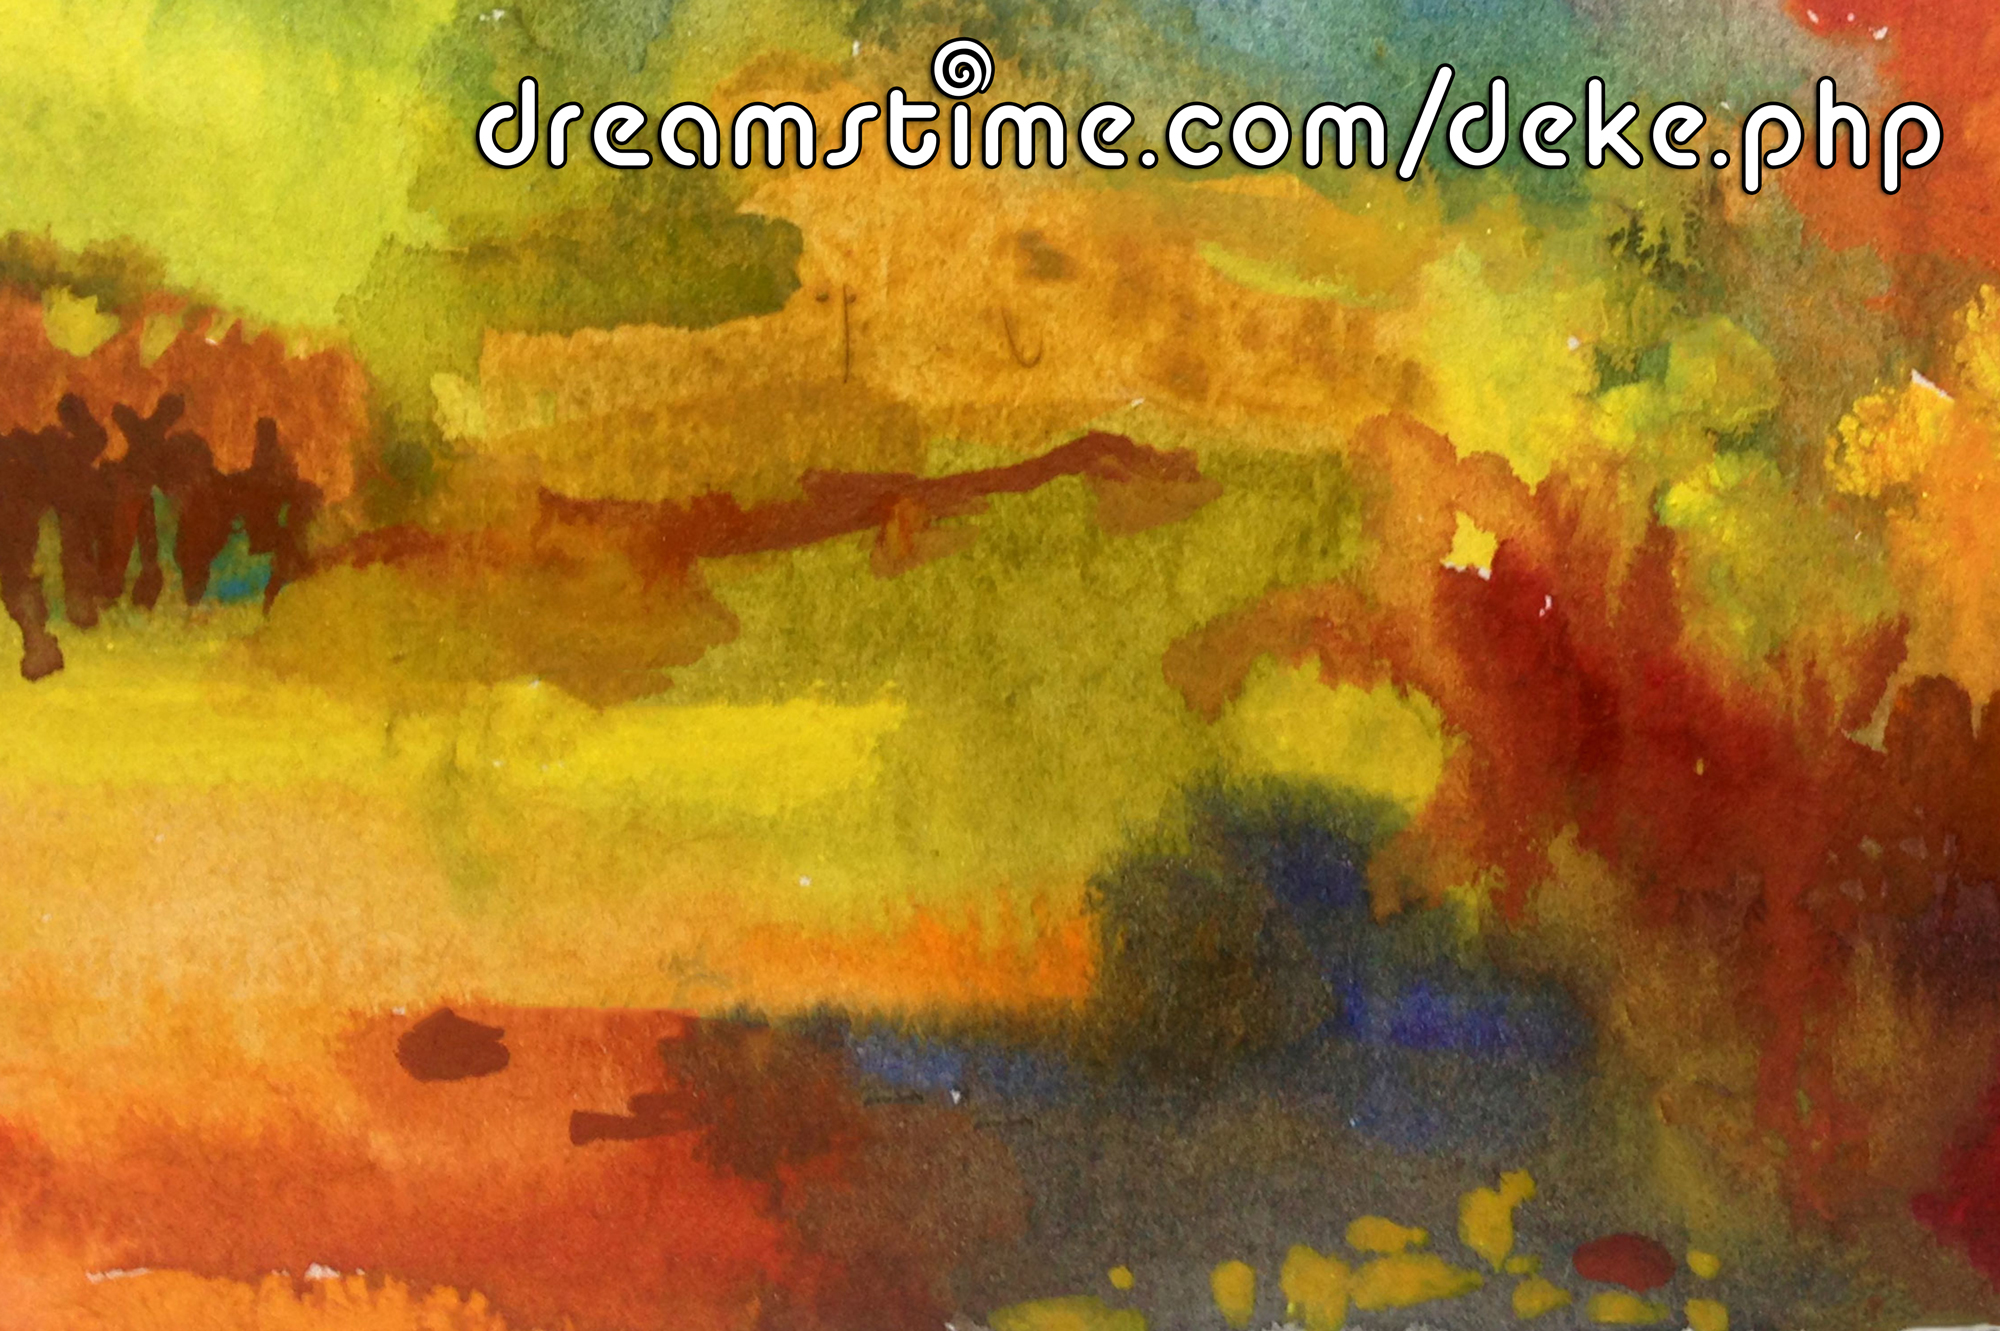 A darker abstract watercolor from Dreamstime